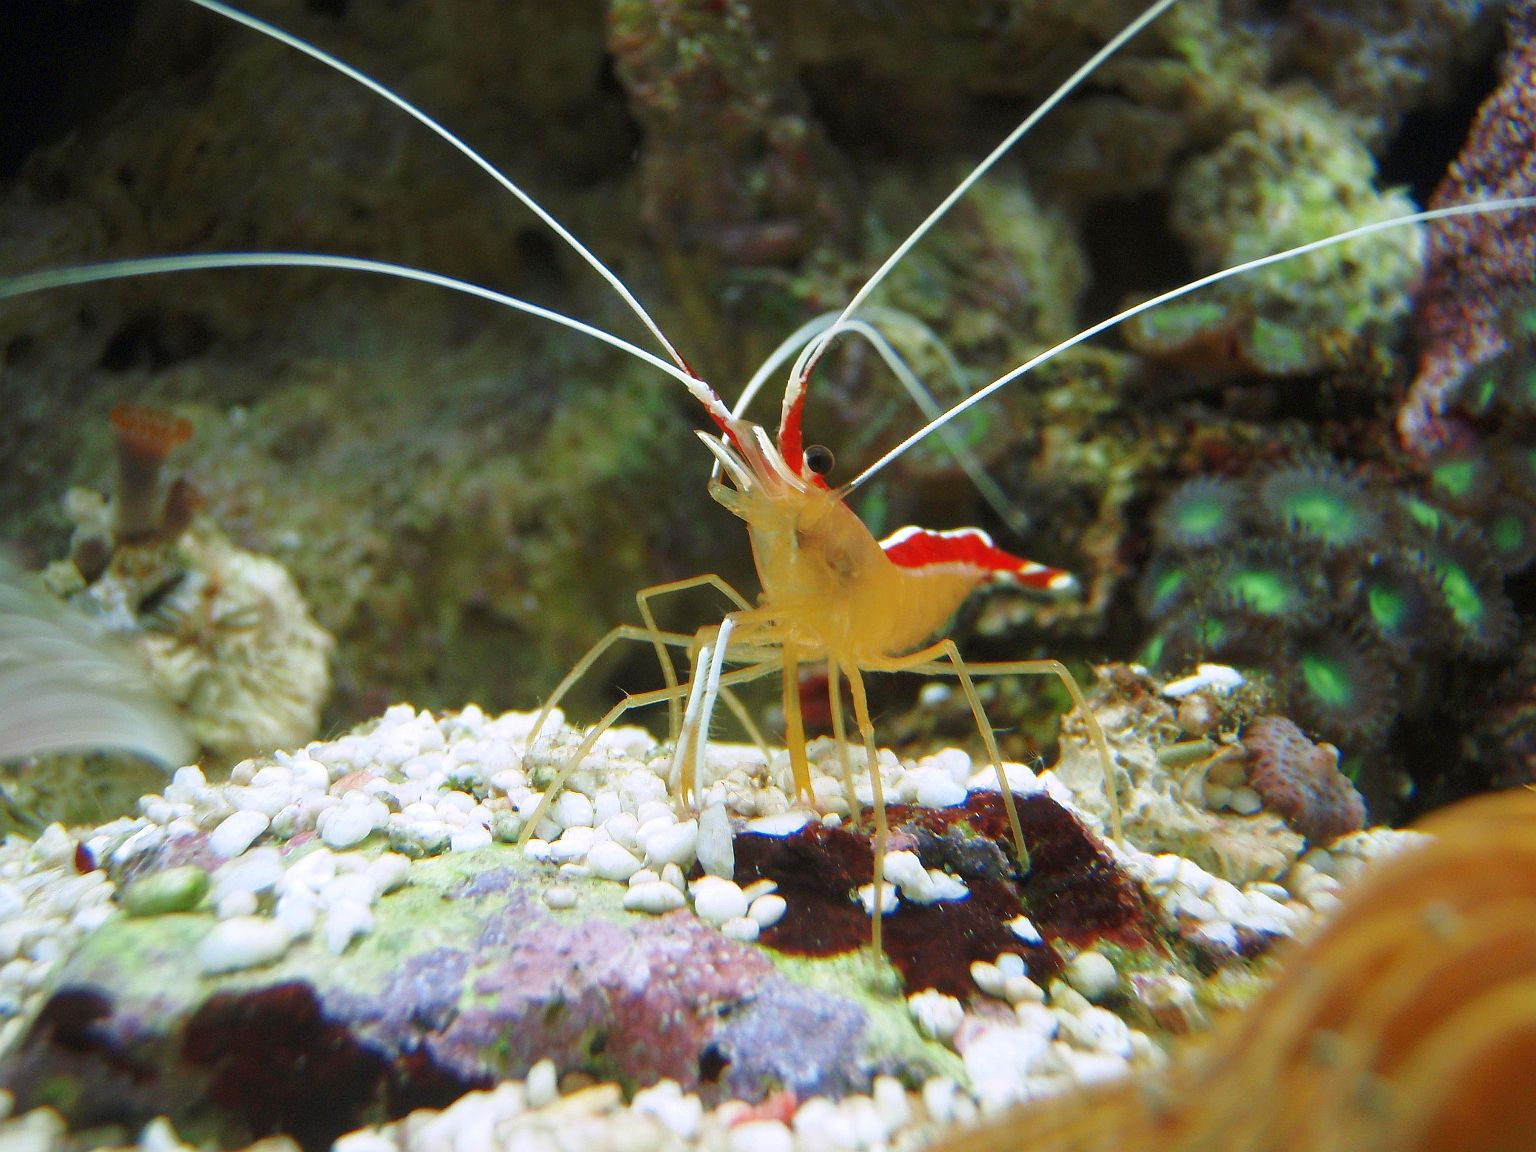 PIG the cleaner shrimp in action!